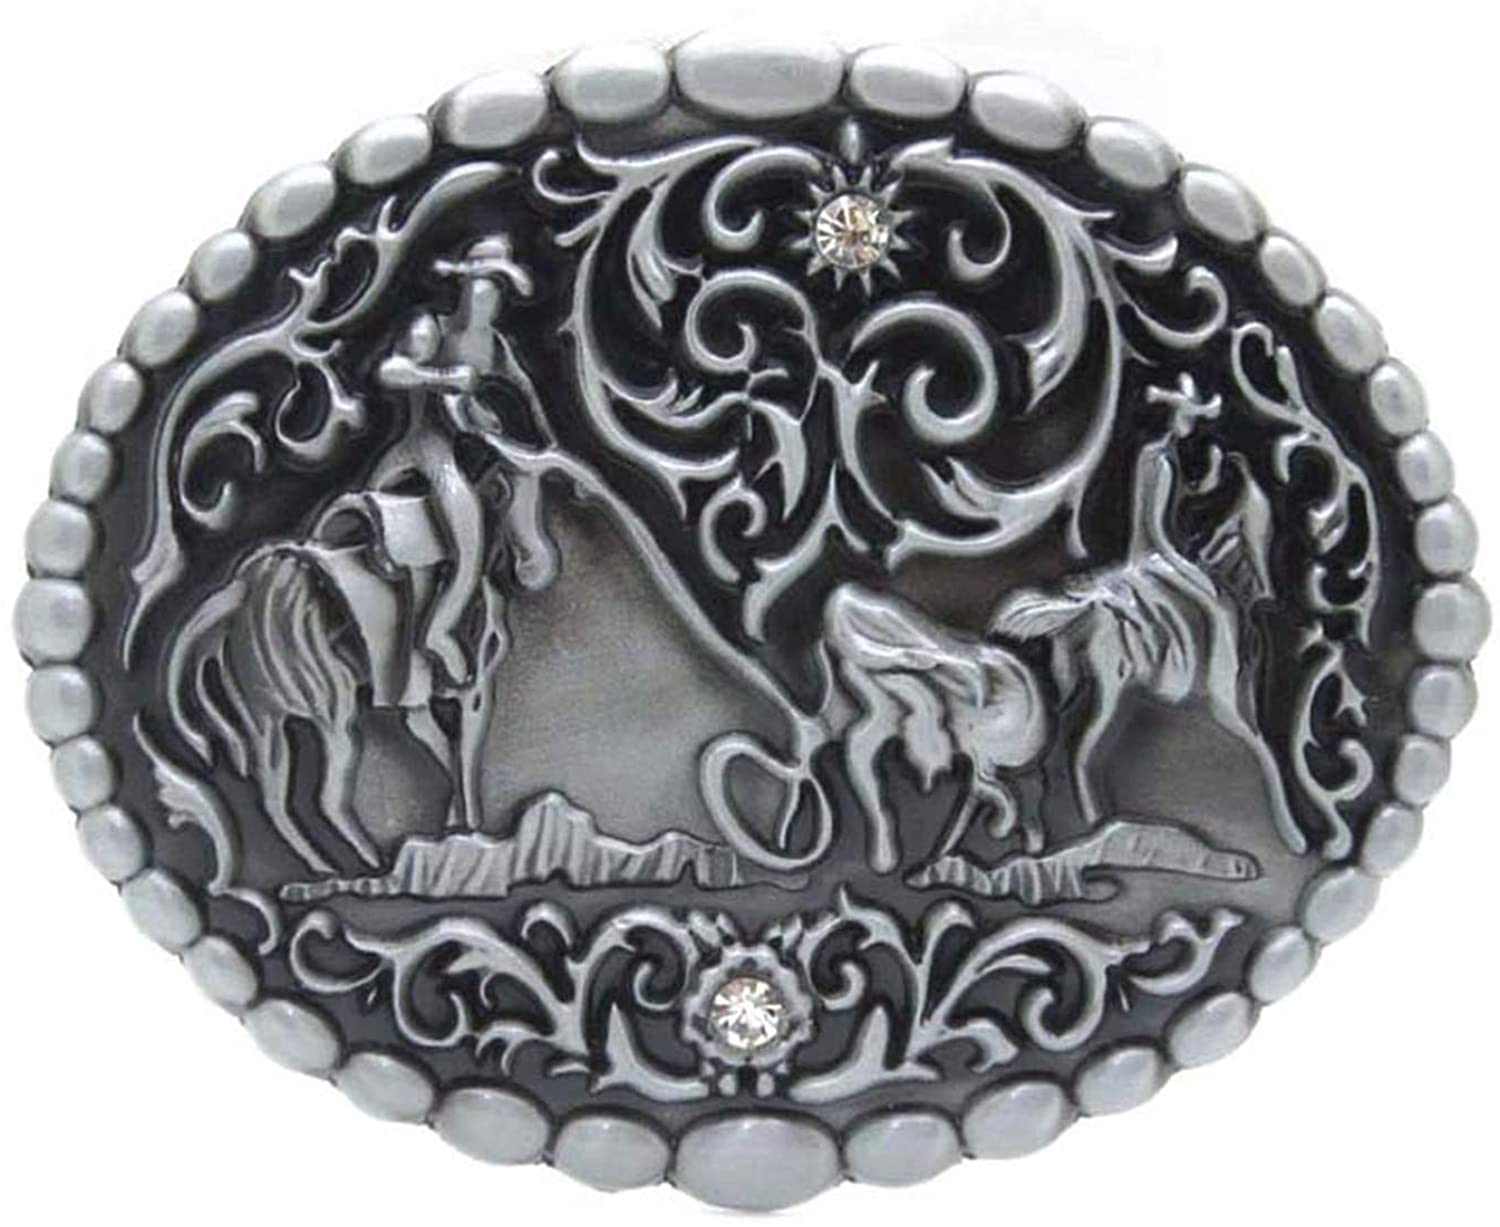 Herdsman Rodeo Cowboy Cowgirl Western Belt Buckle Silver With Gold Suitable 4Cm Width Belt